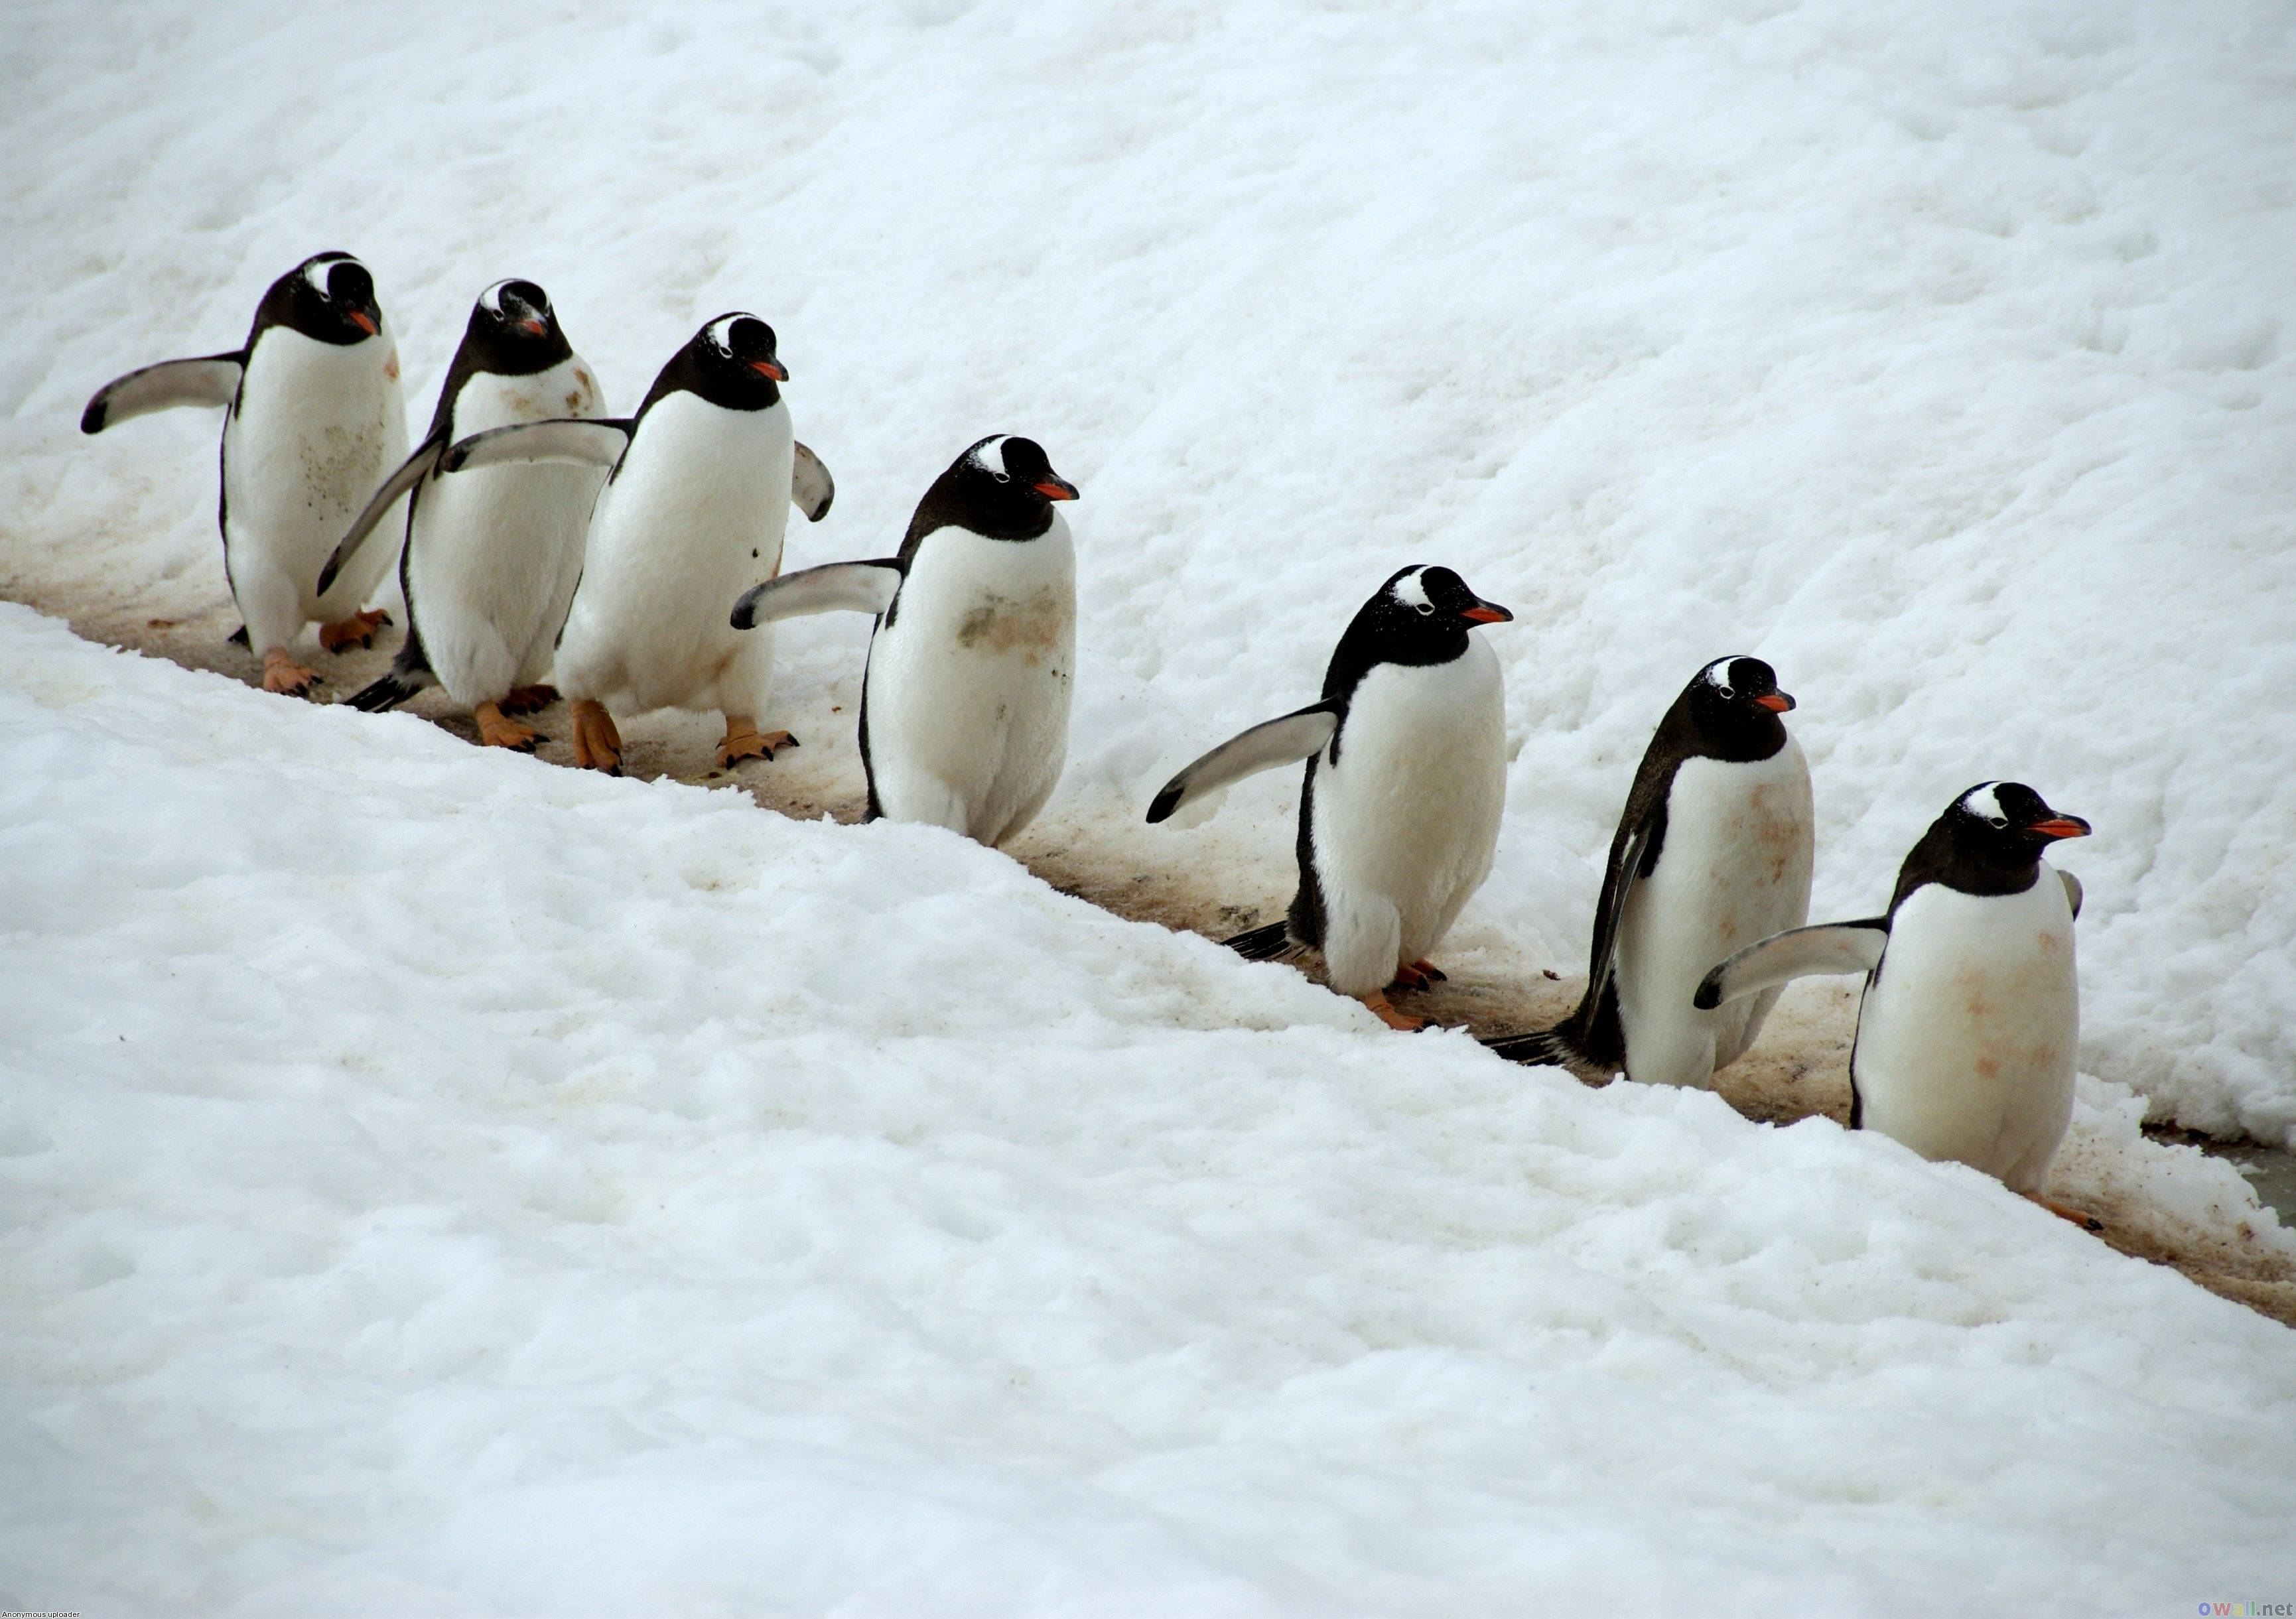 Funny Penguin Download wallpaper Gallery 3461x2441